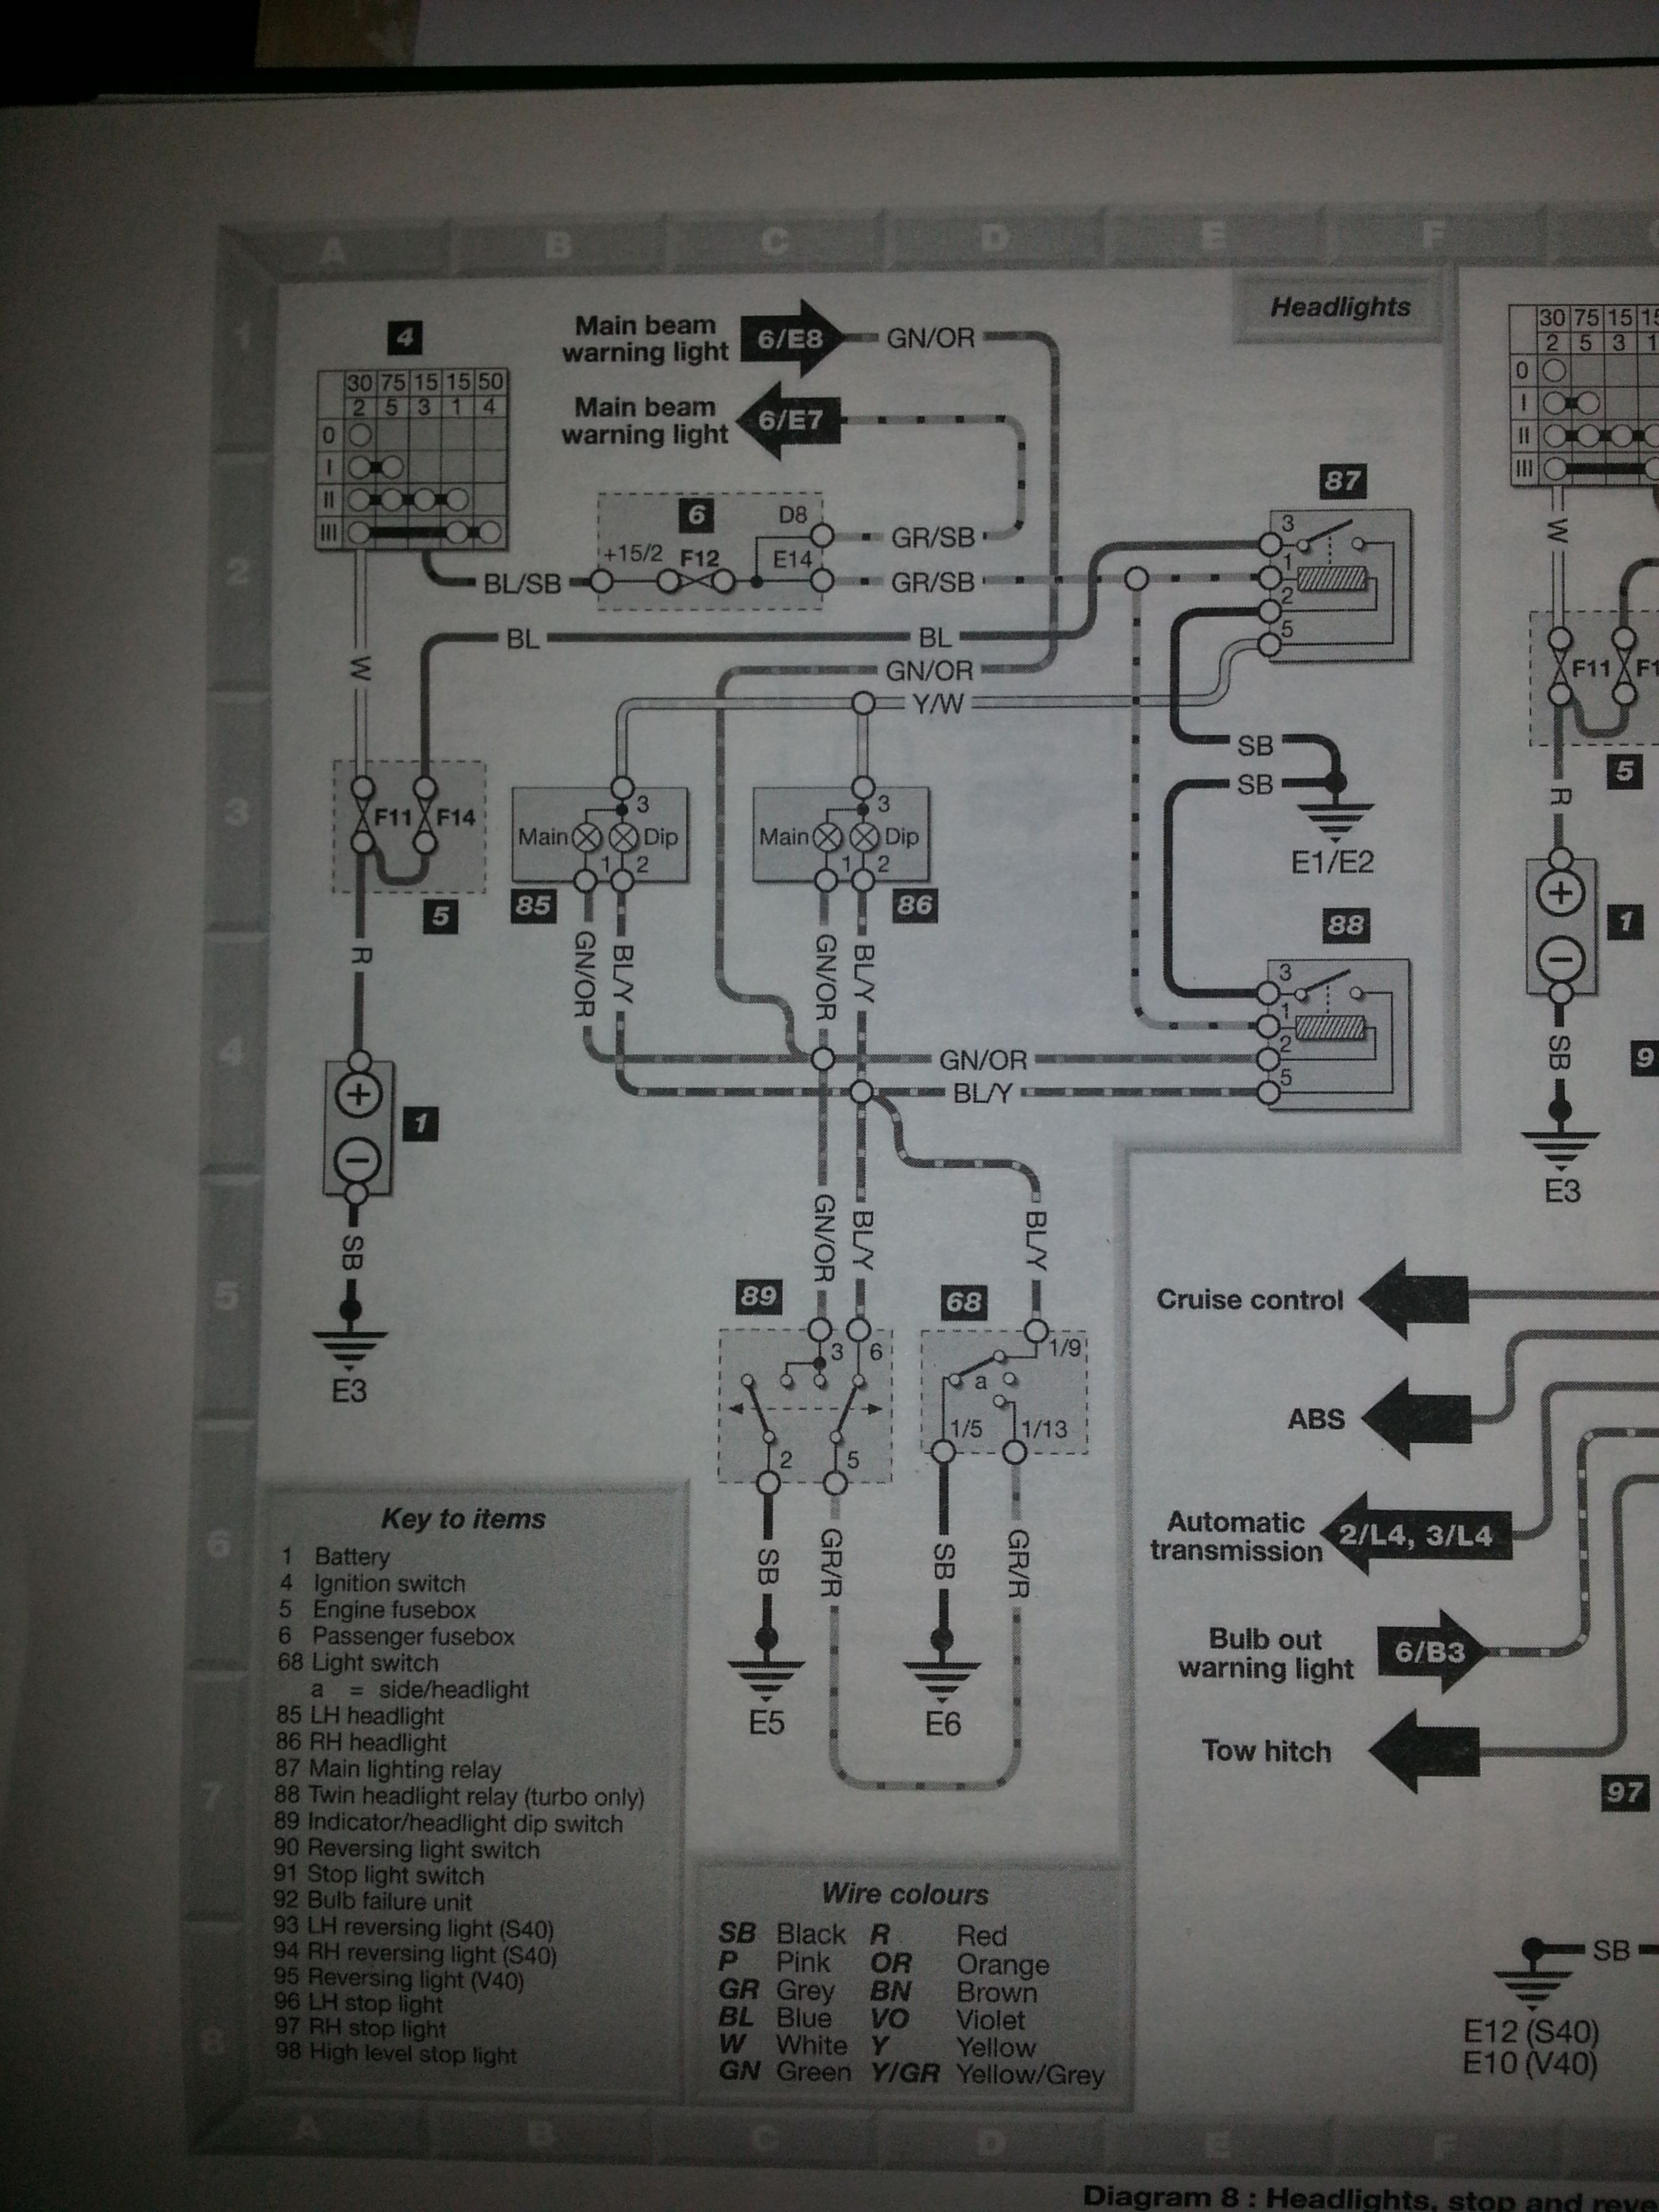 And the wiring diagram that looks more like it matches your car than the  ones I was using from the 2001 model.